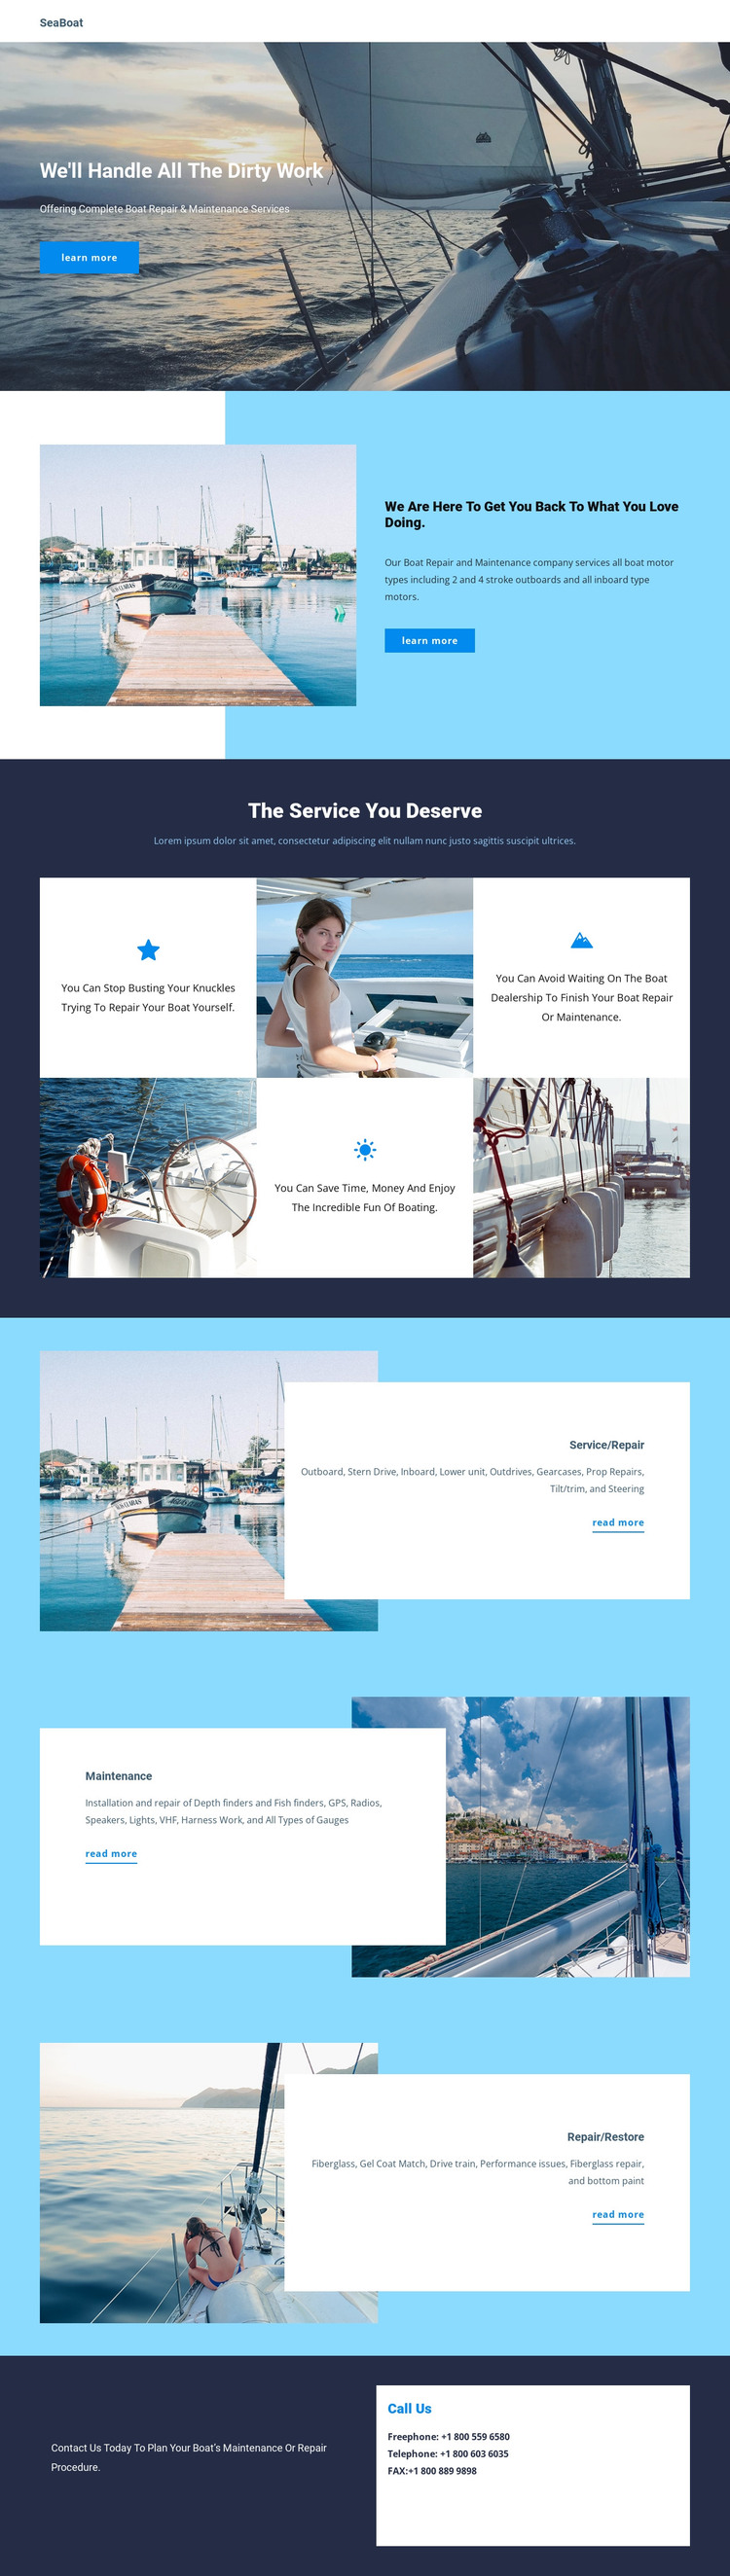 Travel on Seaboat HTML Template